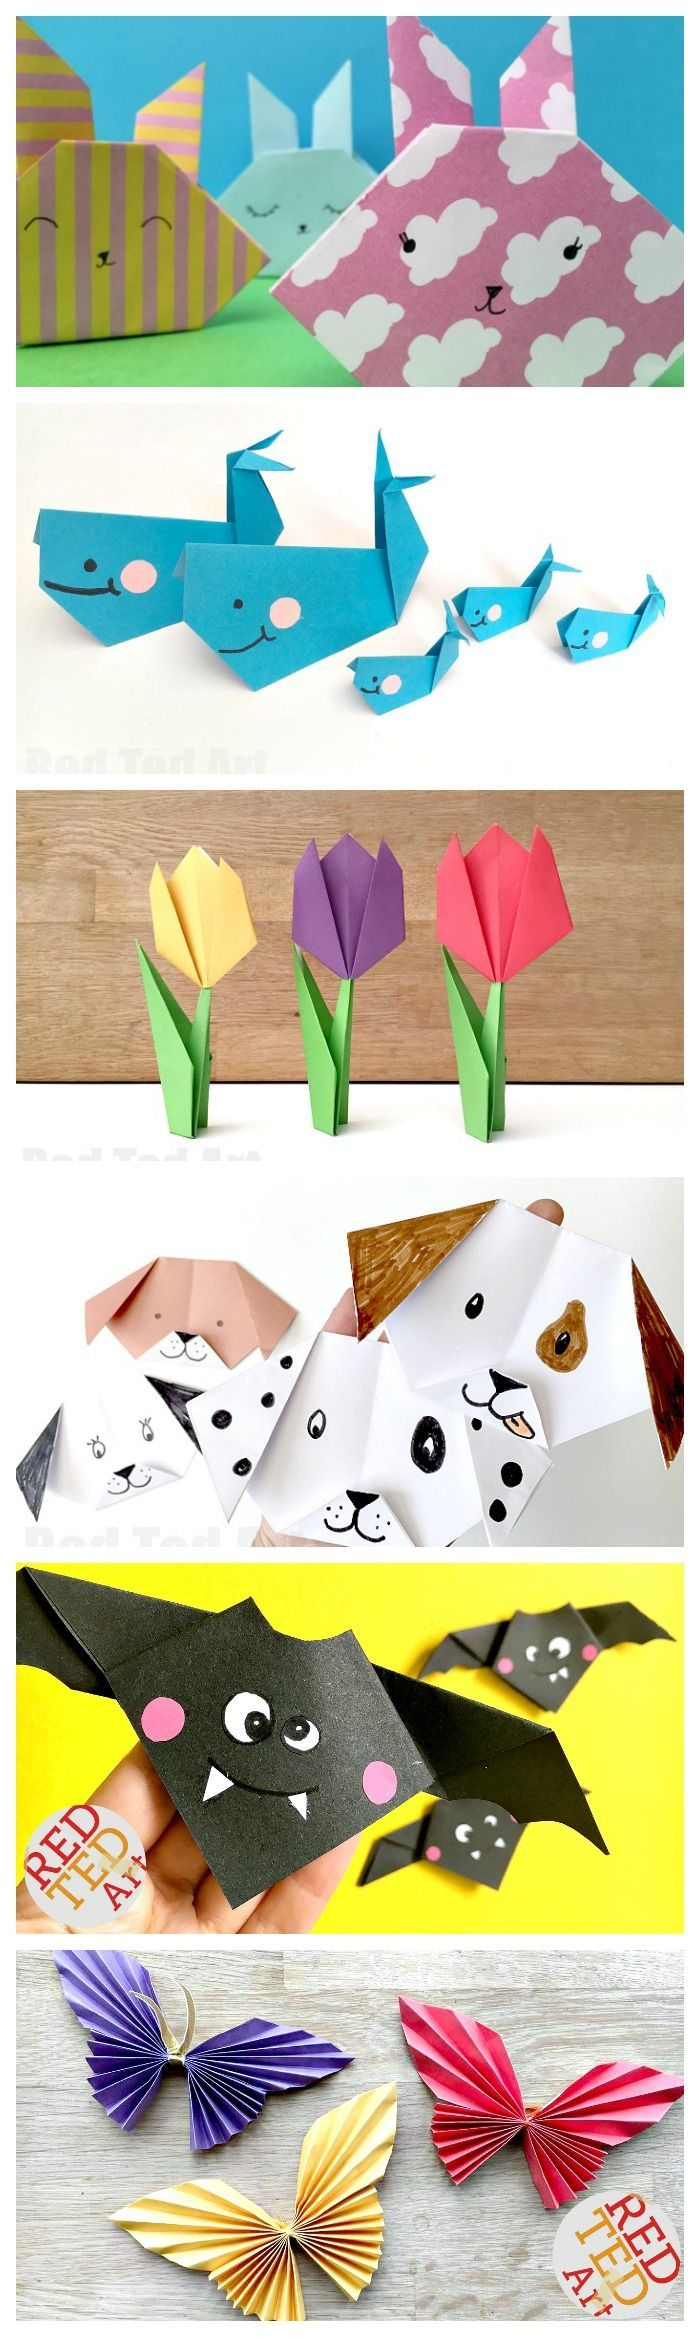 "Cute & Easy Origami for Kids. We love Origami! It isn't as difficult as people sometimes perceive it to be. Many Origami Projects are great for Beginners and Kids and look fabulous, regardless of how ""neat"" the folding is. Here are some of our favourite Easy Origami for Kids ideas, that are a great way to introduce Origami folding to children. Great for fine motor skills, learning to follow instructions and co-ordination. Enjoy!"